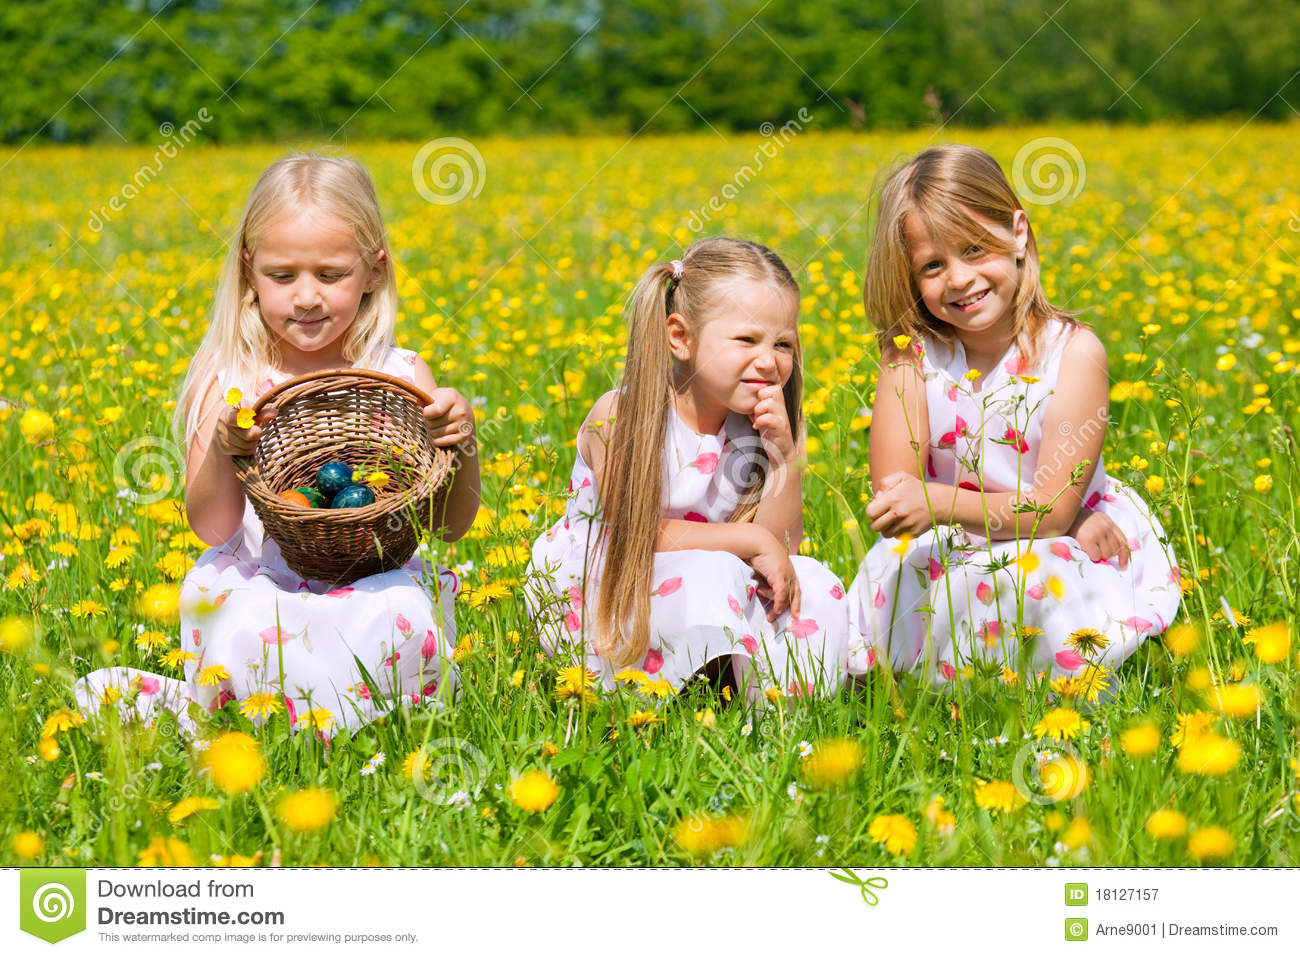 Children about Easter 5